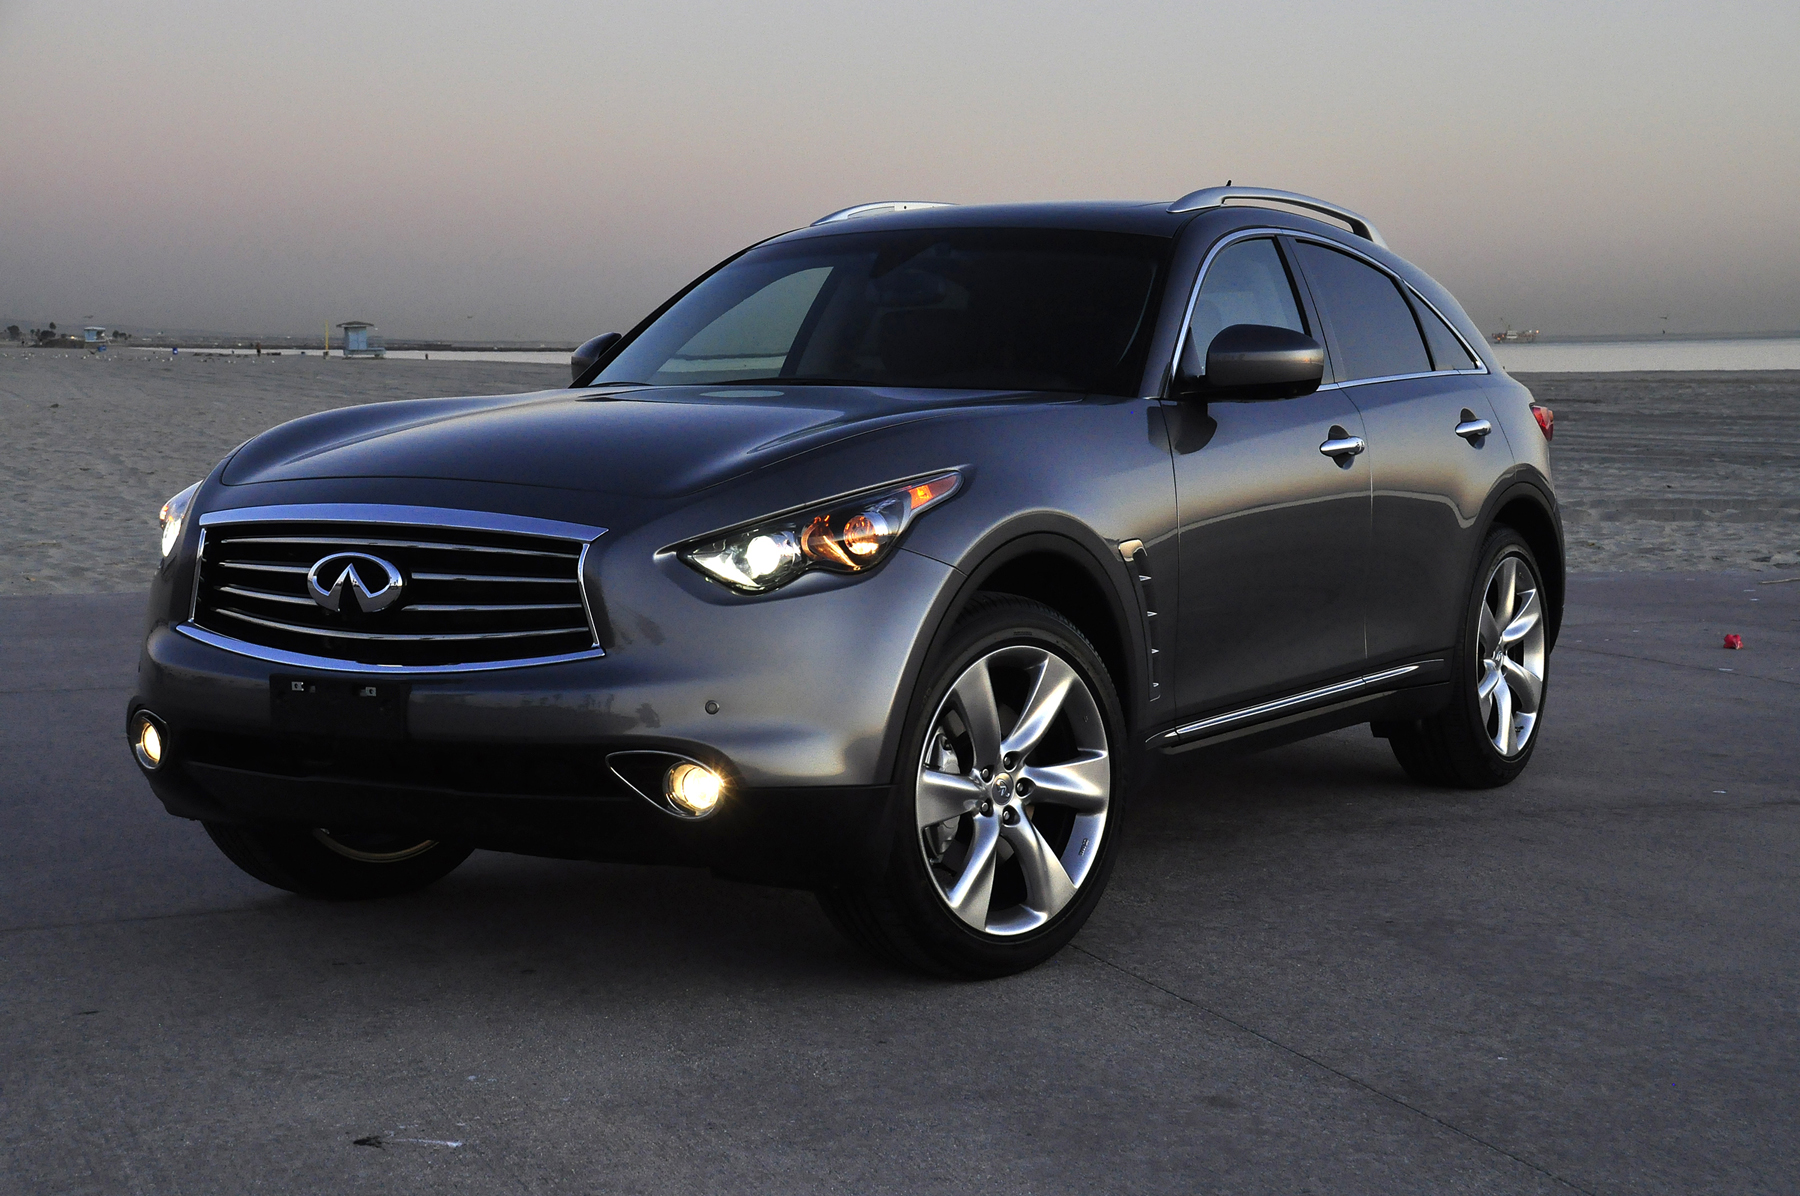 2012 infiniti fx gets updates and a new model what to do with the 2012 infiniti fx50s awd vanachro Image collections